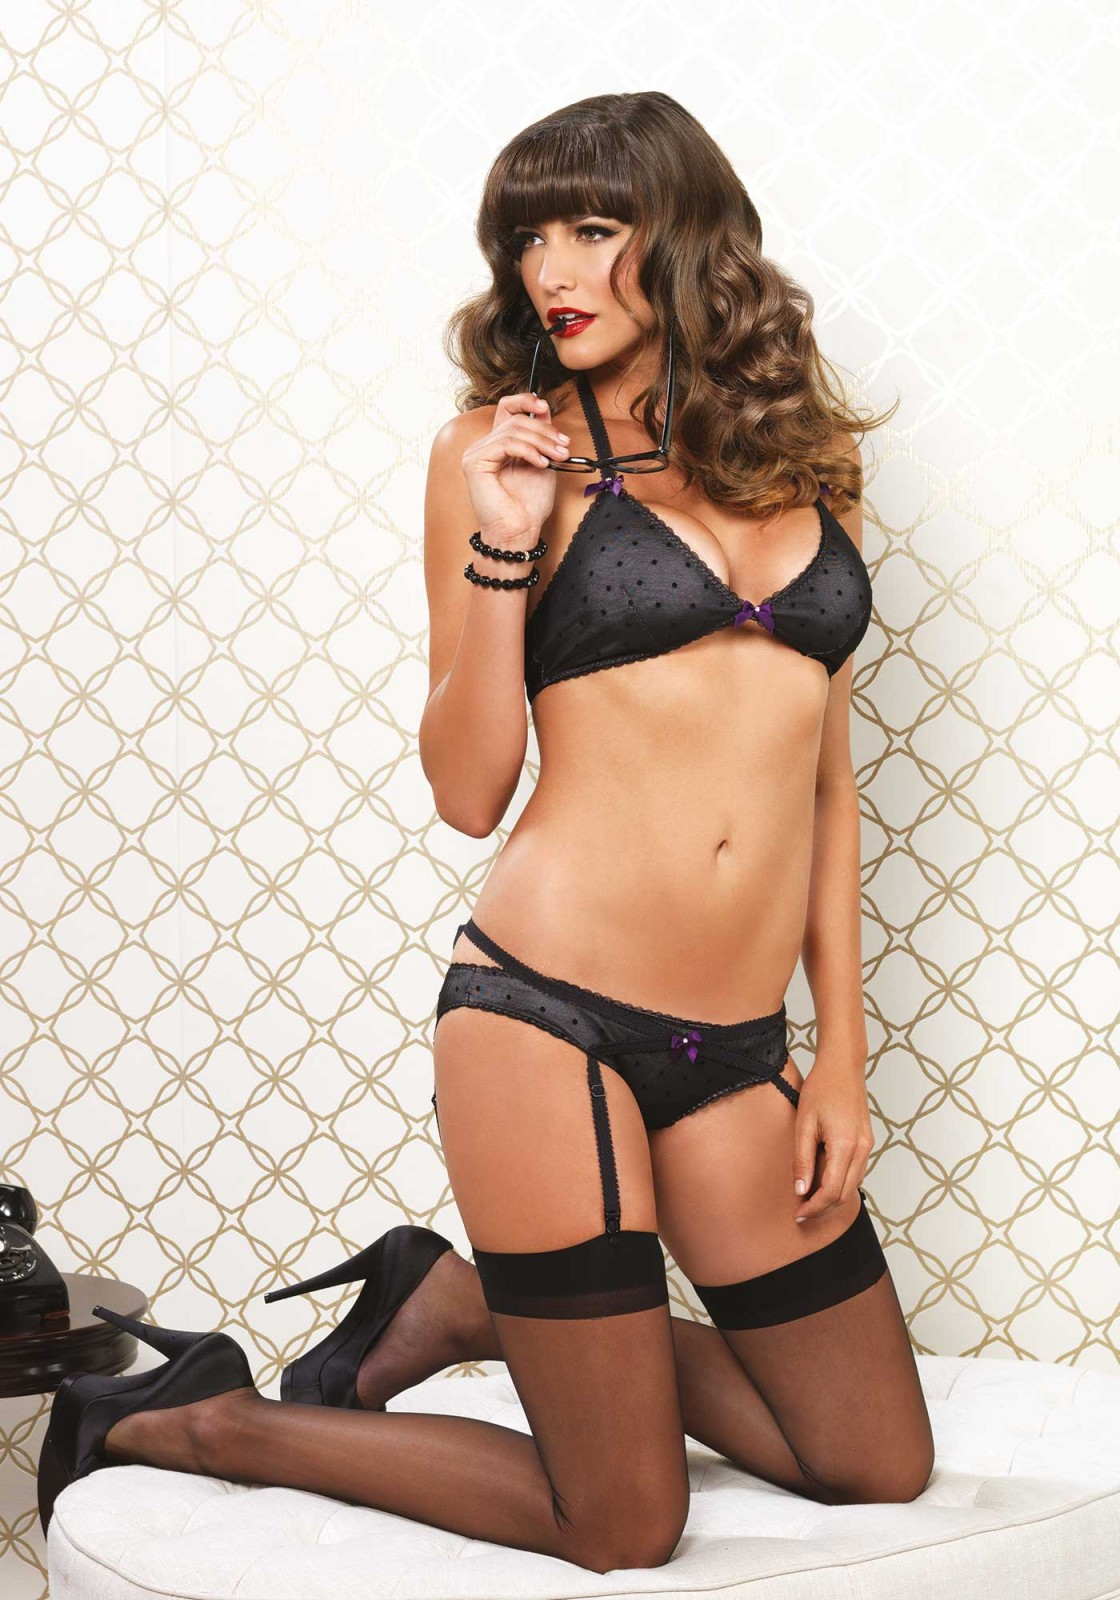 The cross strap detail on the garter panty makes this set extra compelling. The sheer fabric and polkadot print adds flirtatiousness and sexiness to the set.